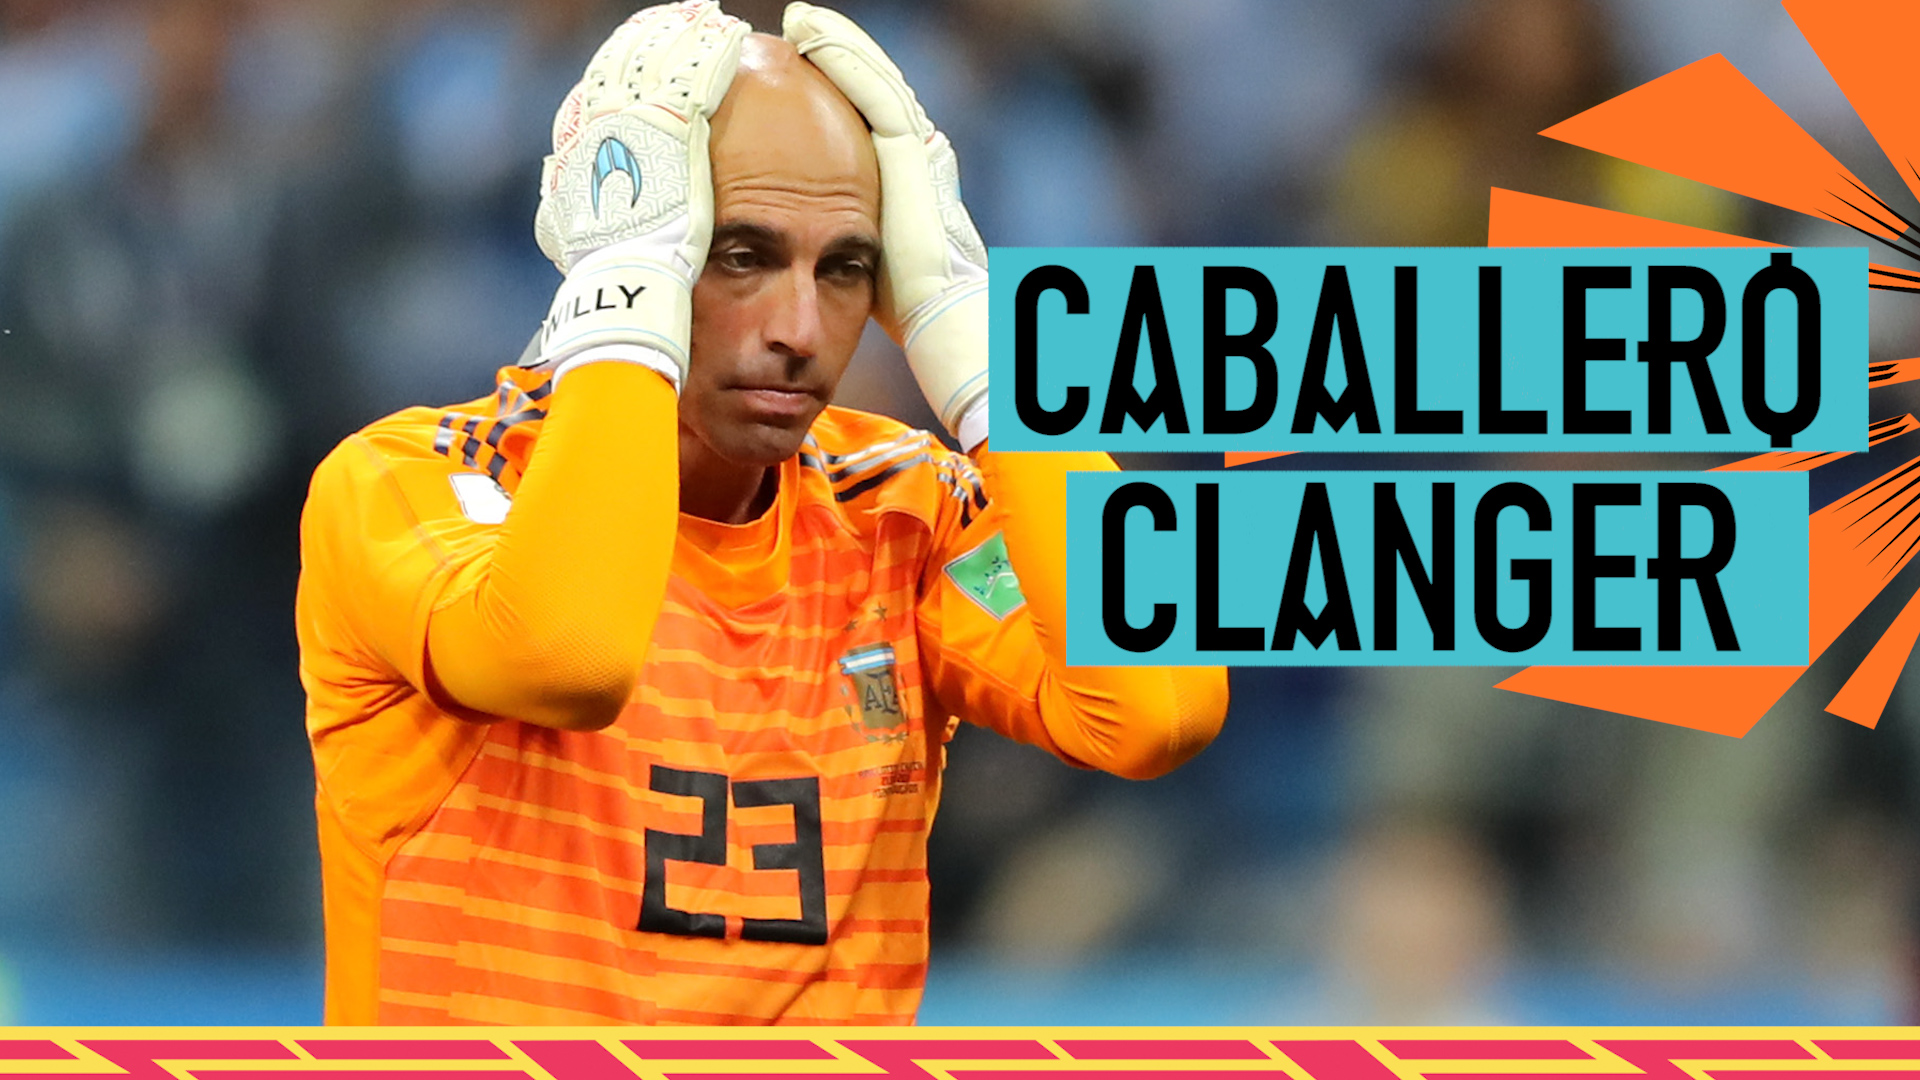 Watch: 'What an awful mistake' - Caballero clanger costs Argentina